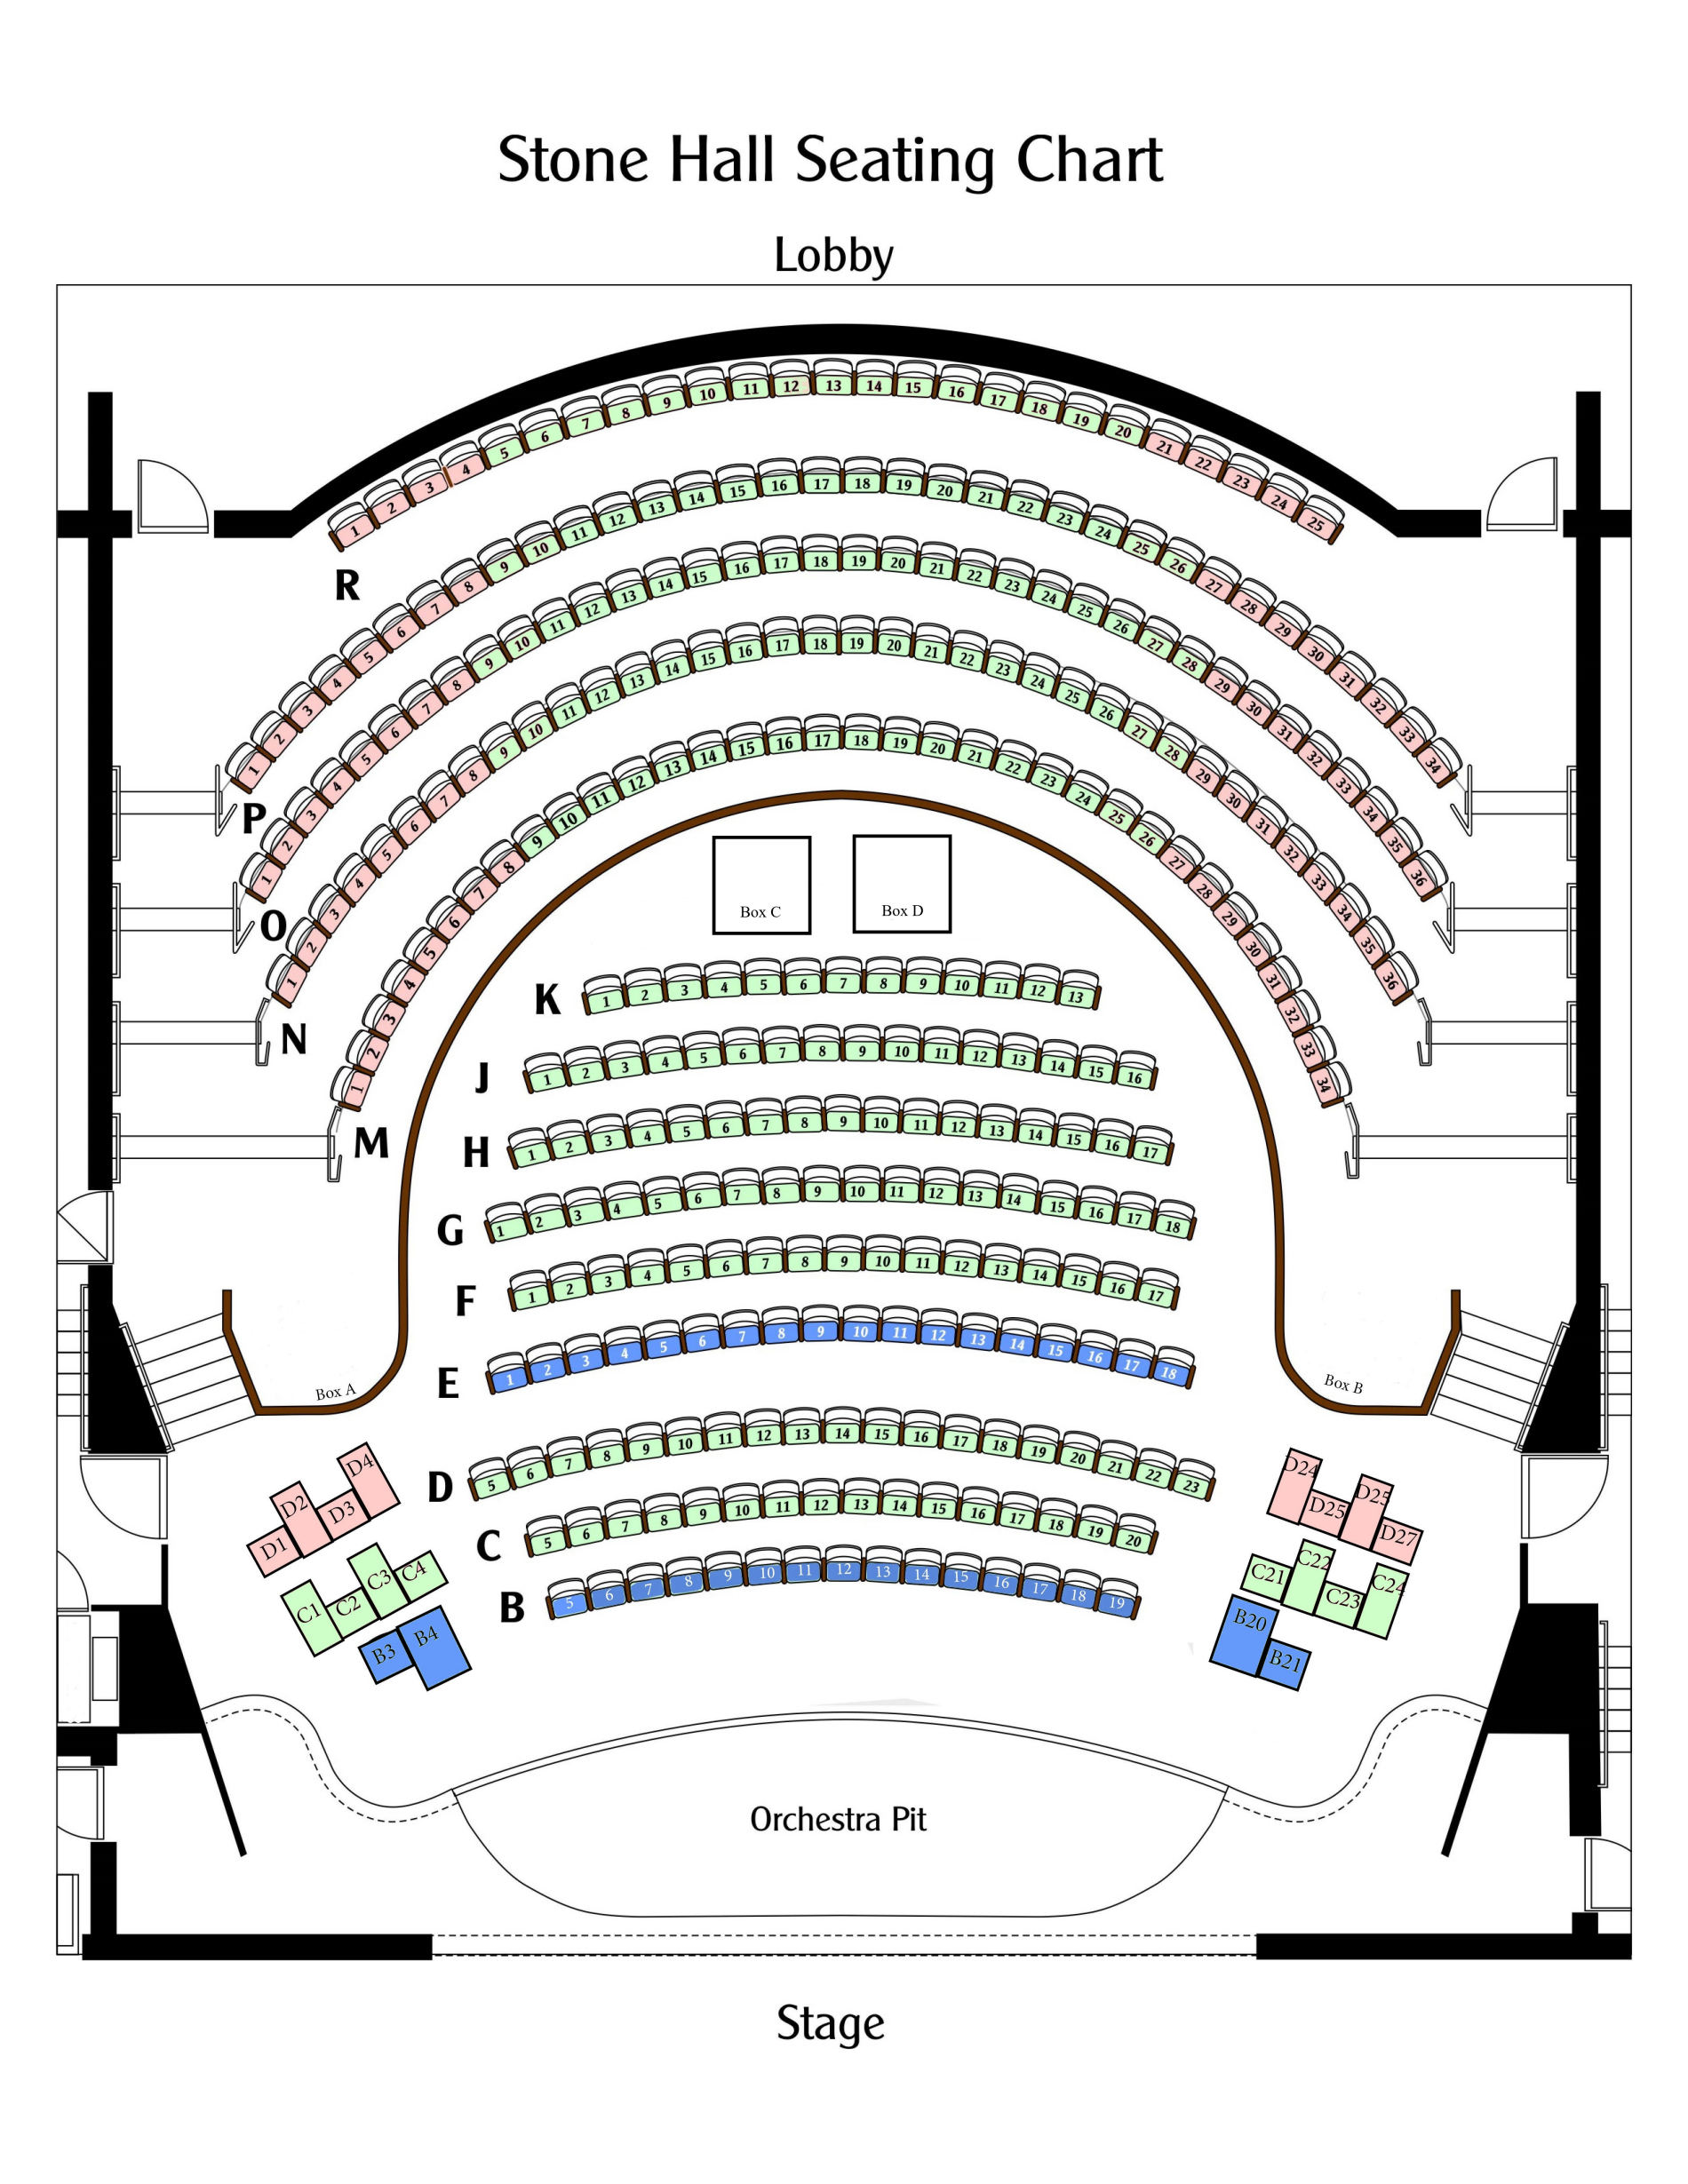 Form 941 Schedule B 2020 Seating Chart – Manatee Performing Arts Center